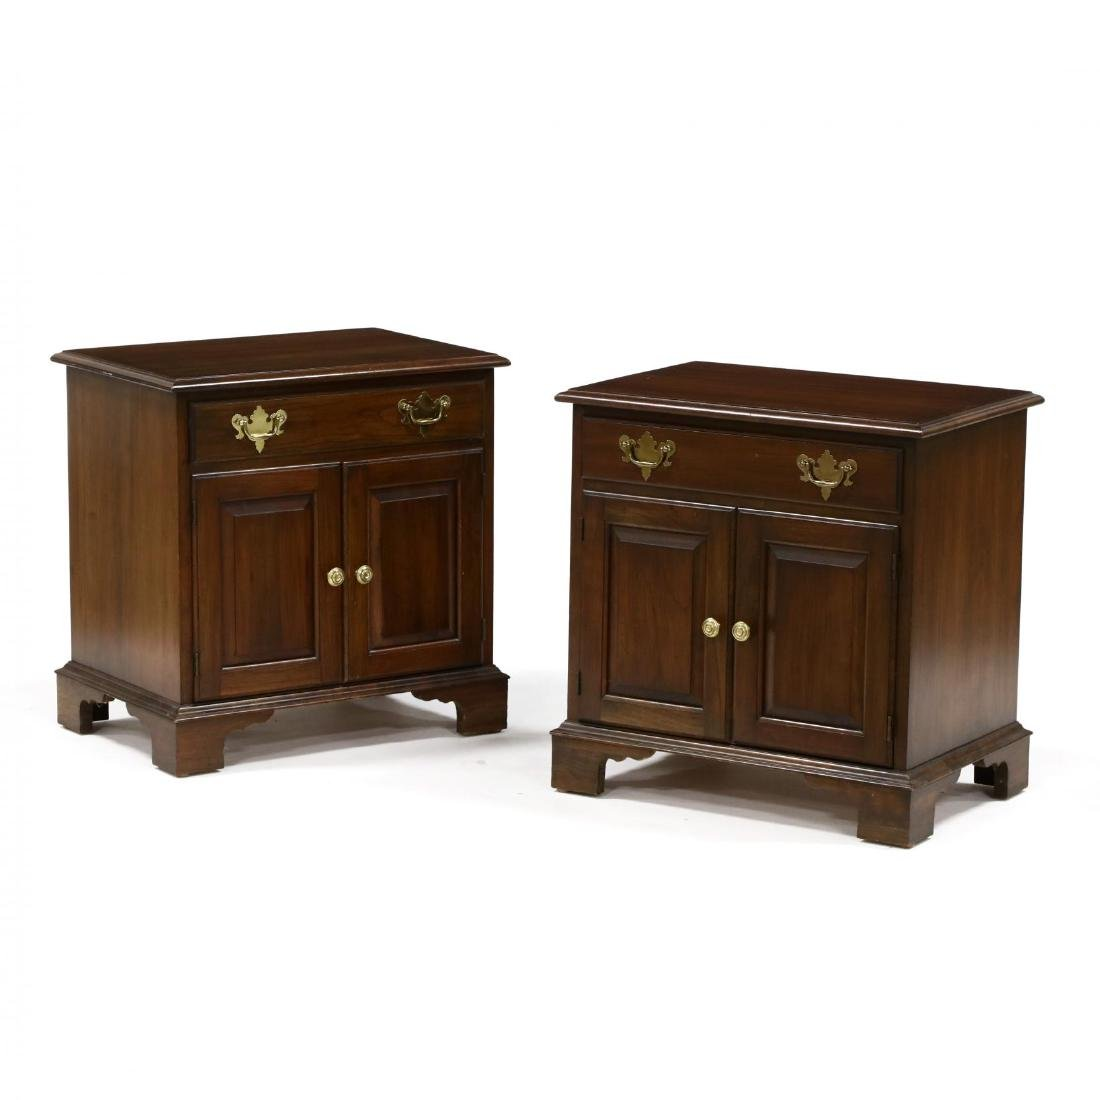 Pennsylvania House, Pair of Chippendale Style Cherry